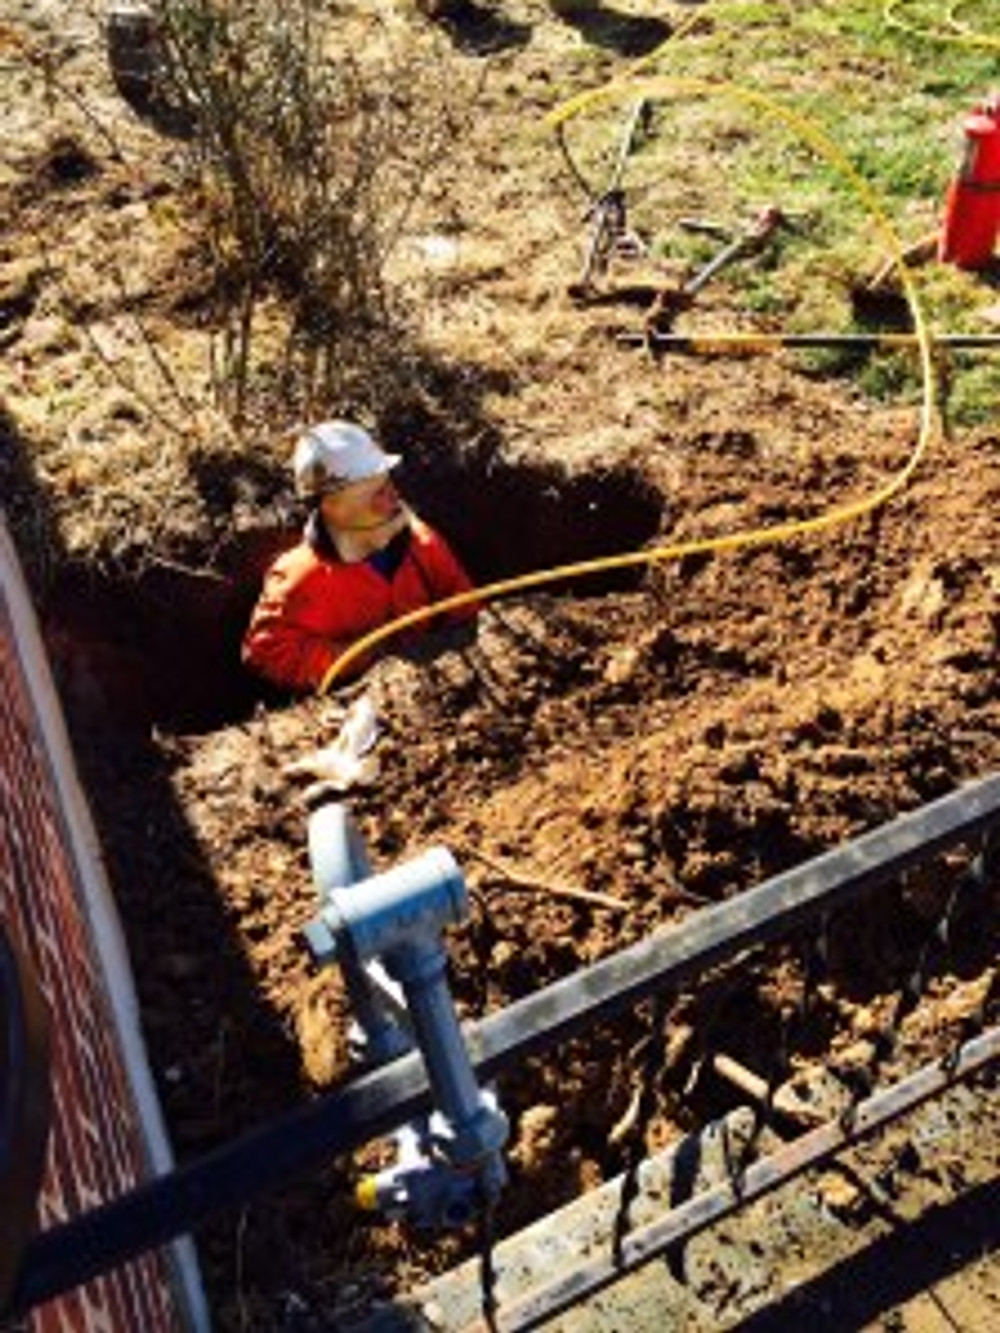 Outside  putting in the pipeline to the house. How is she going to get out of that hole?